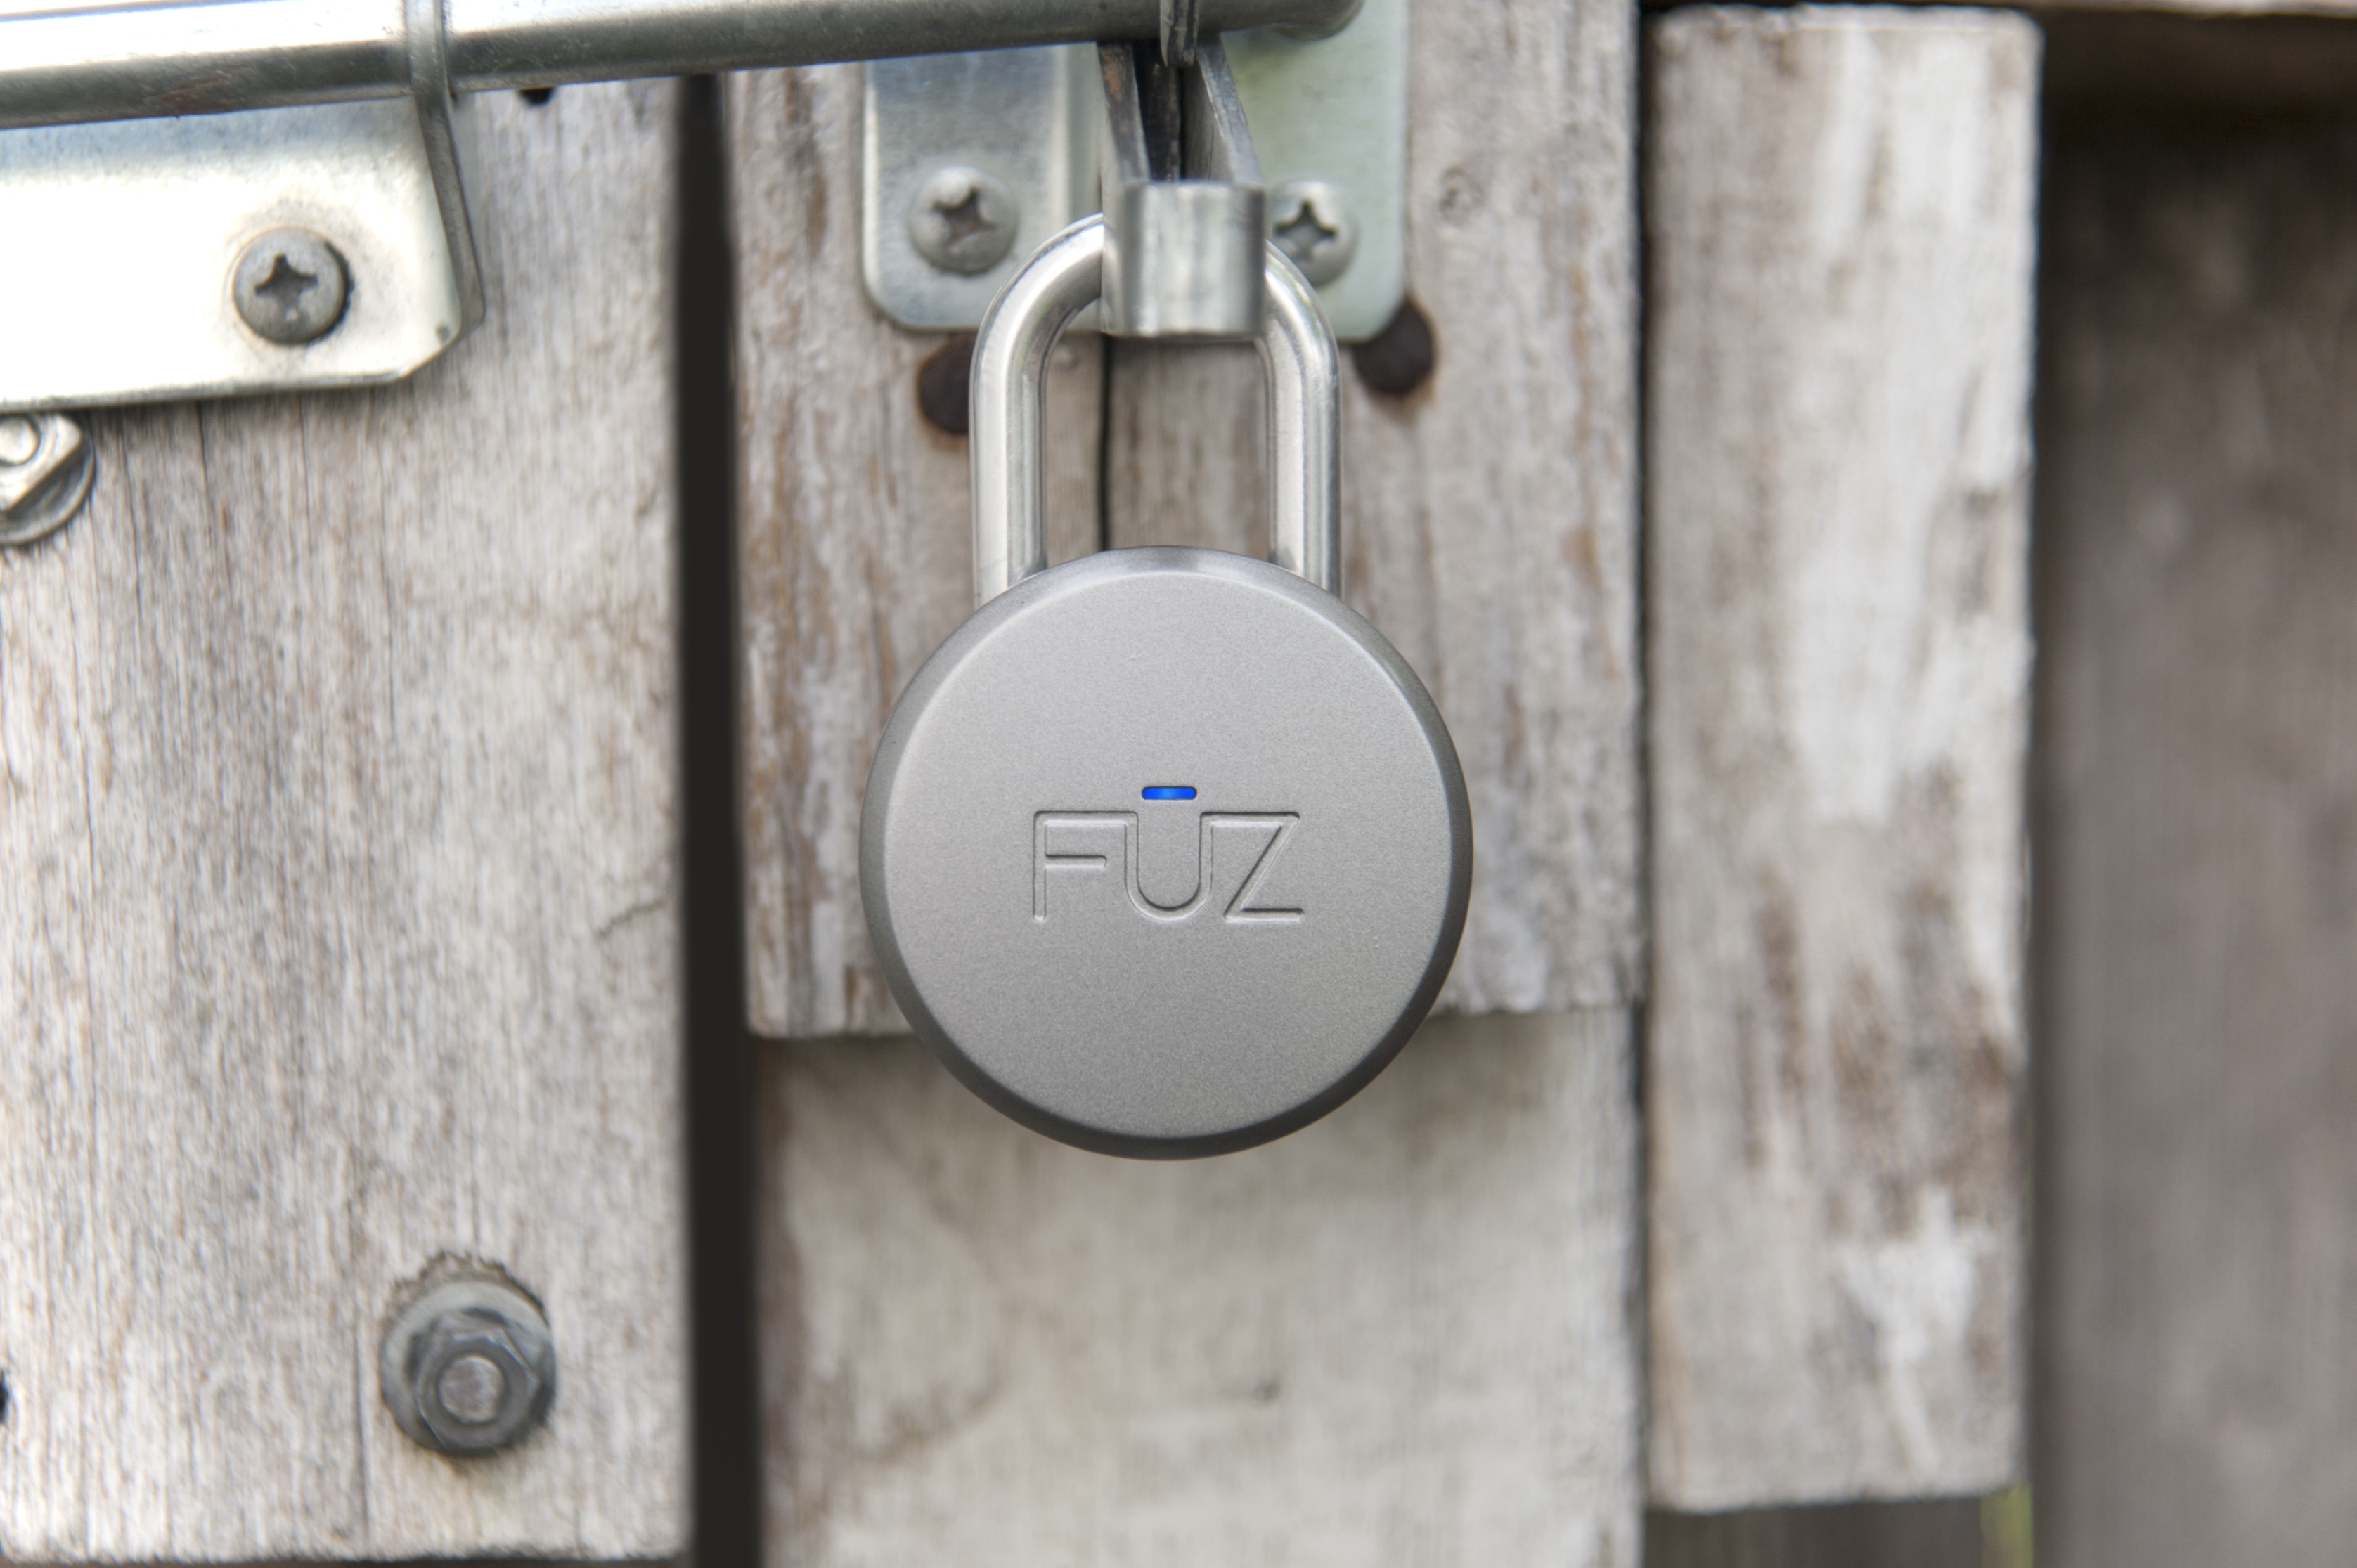 Noke Bluetooth padlock on gate - press image courtesy Fuz Designs